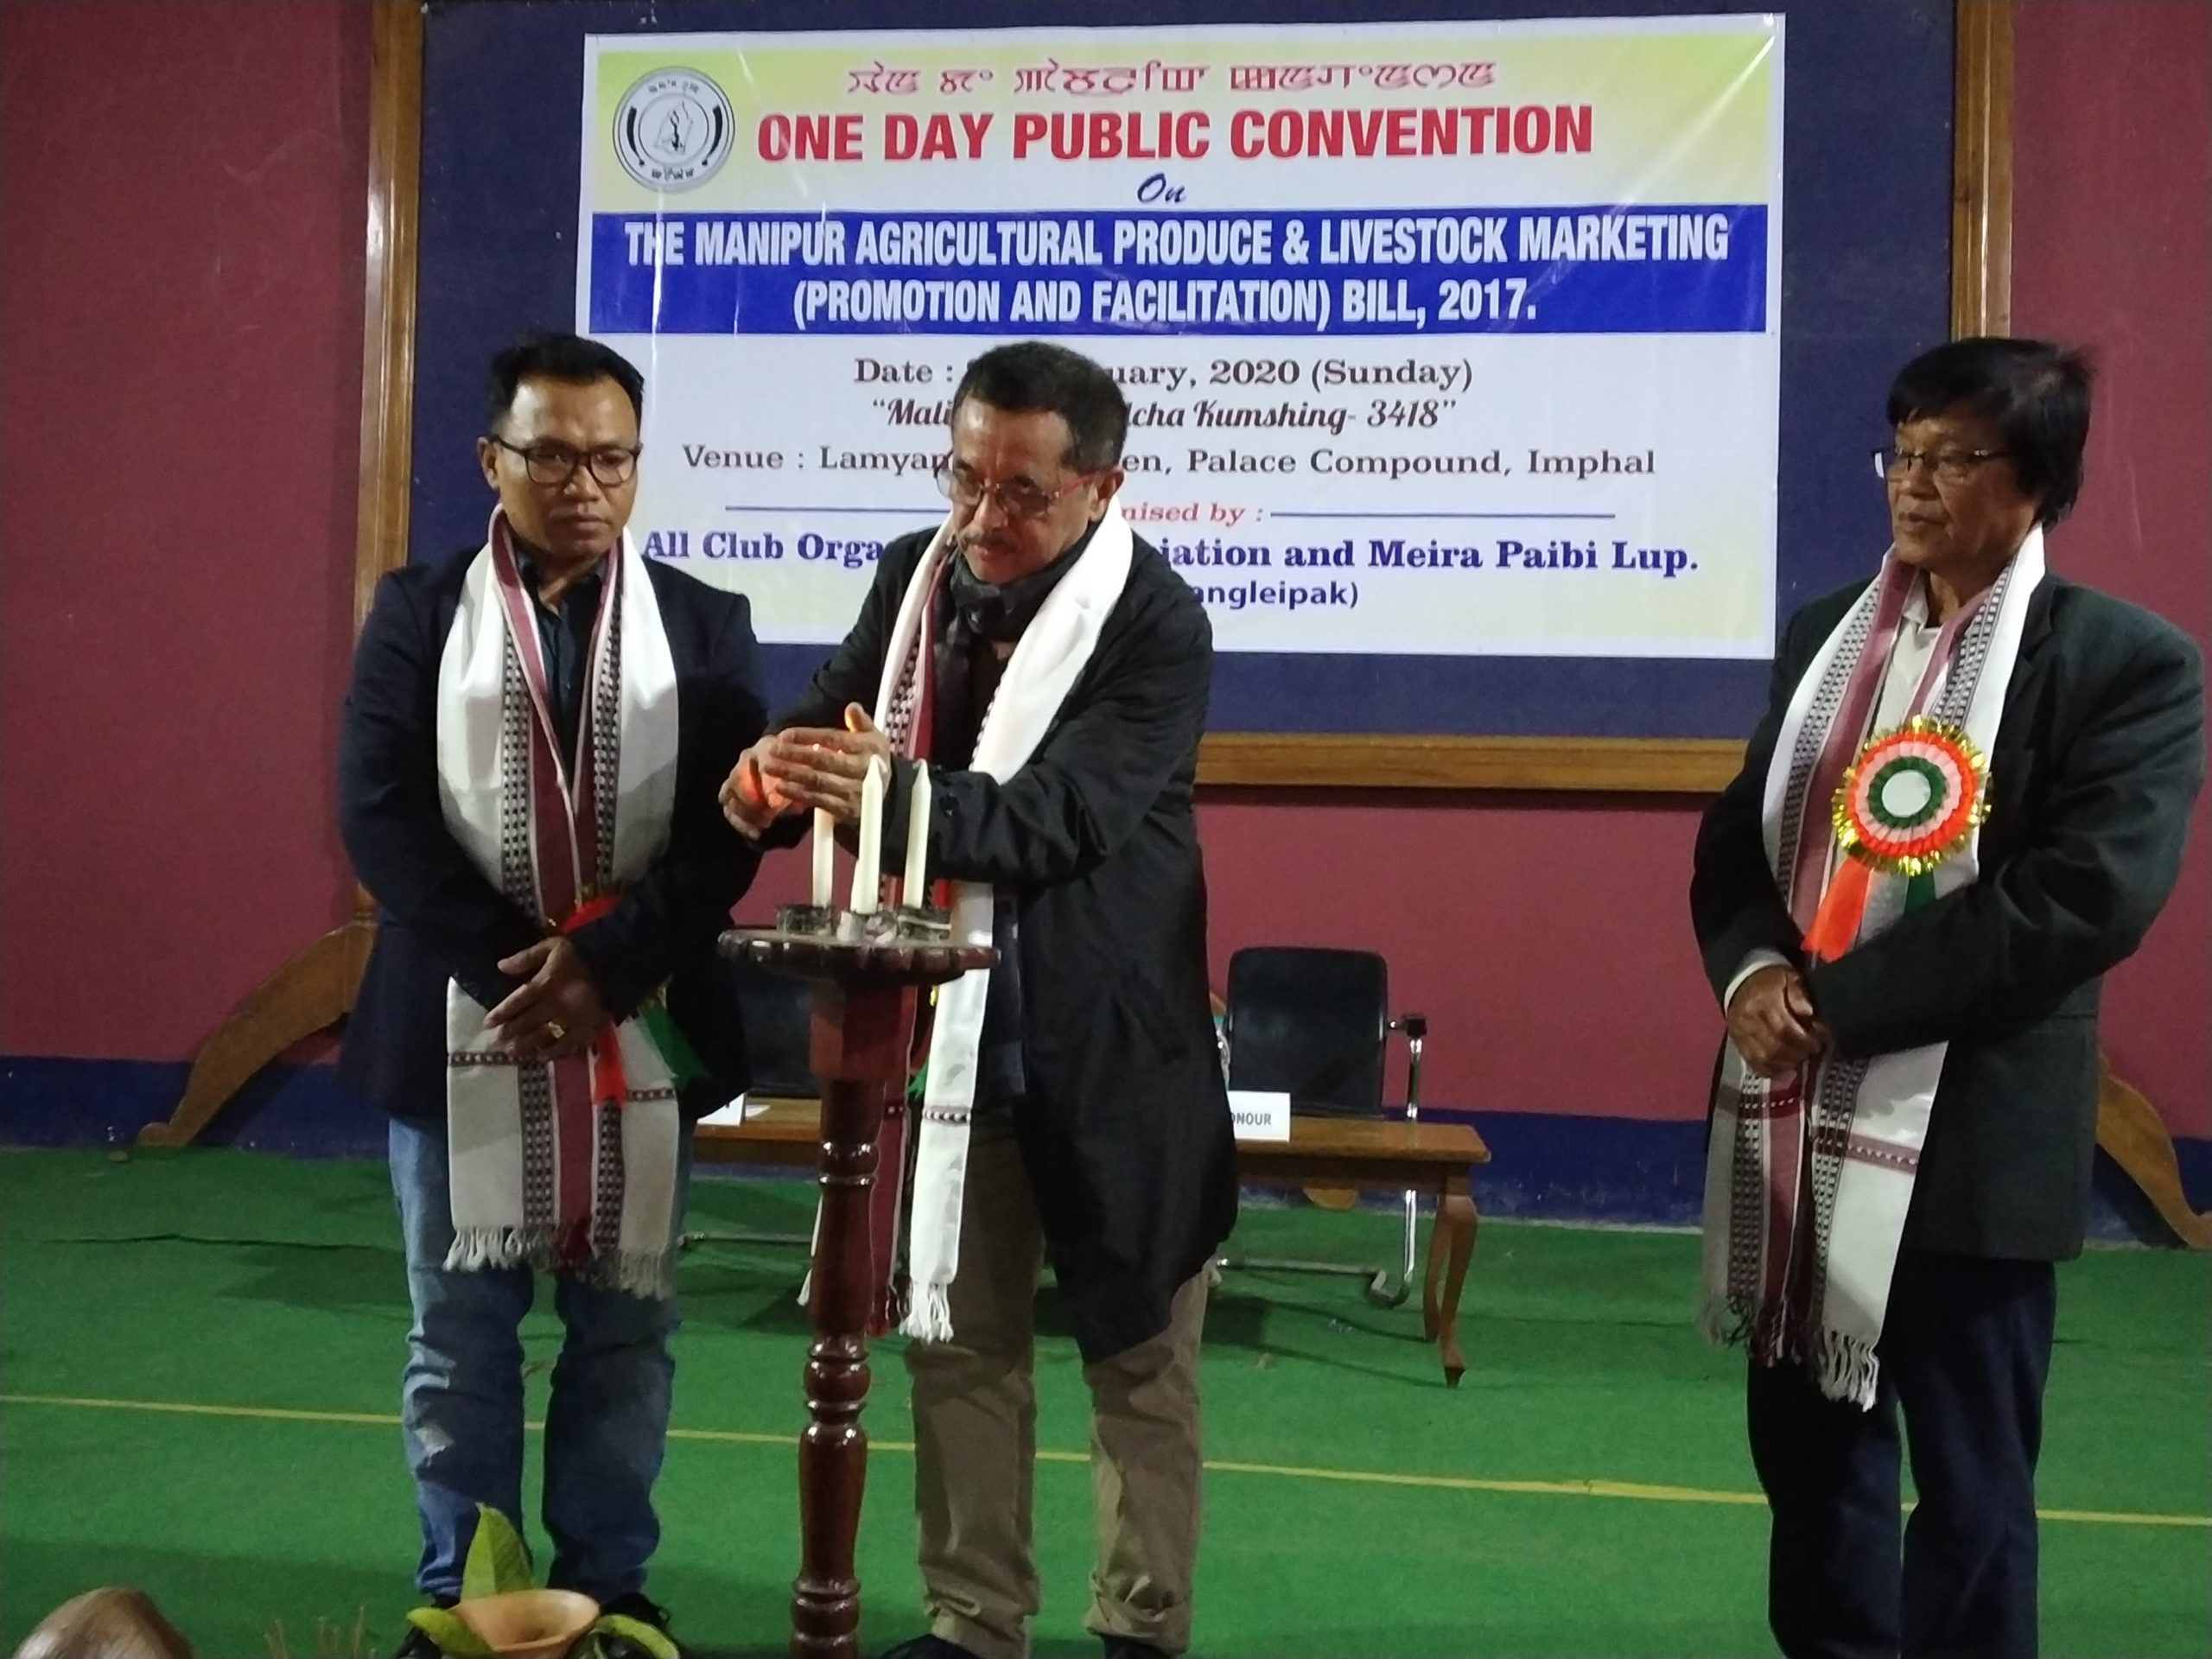 Convention on 'The Manipur Agricultural Produce and Livestock Marketing Bill, 2017' held